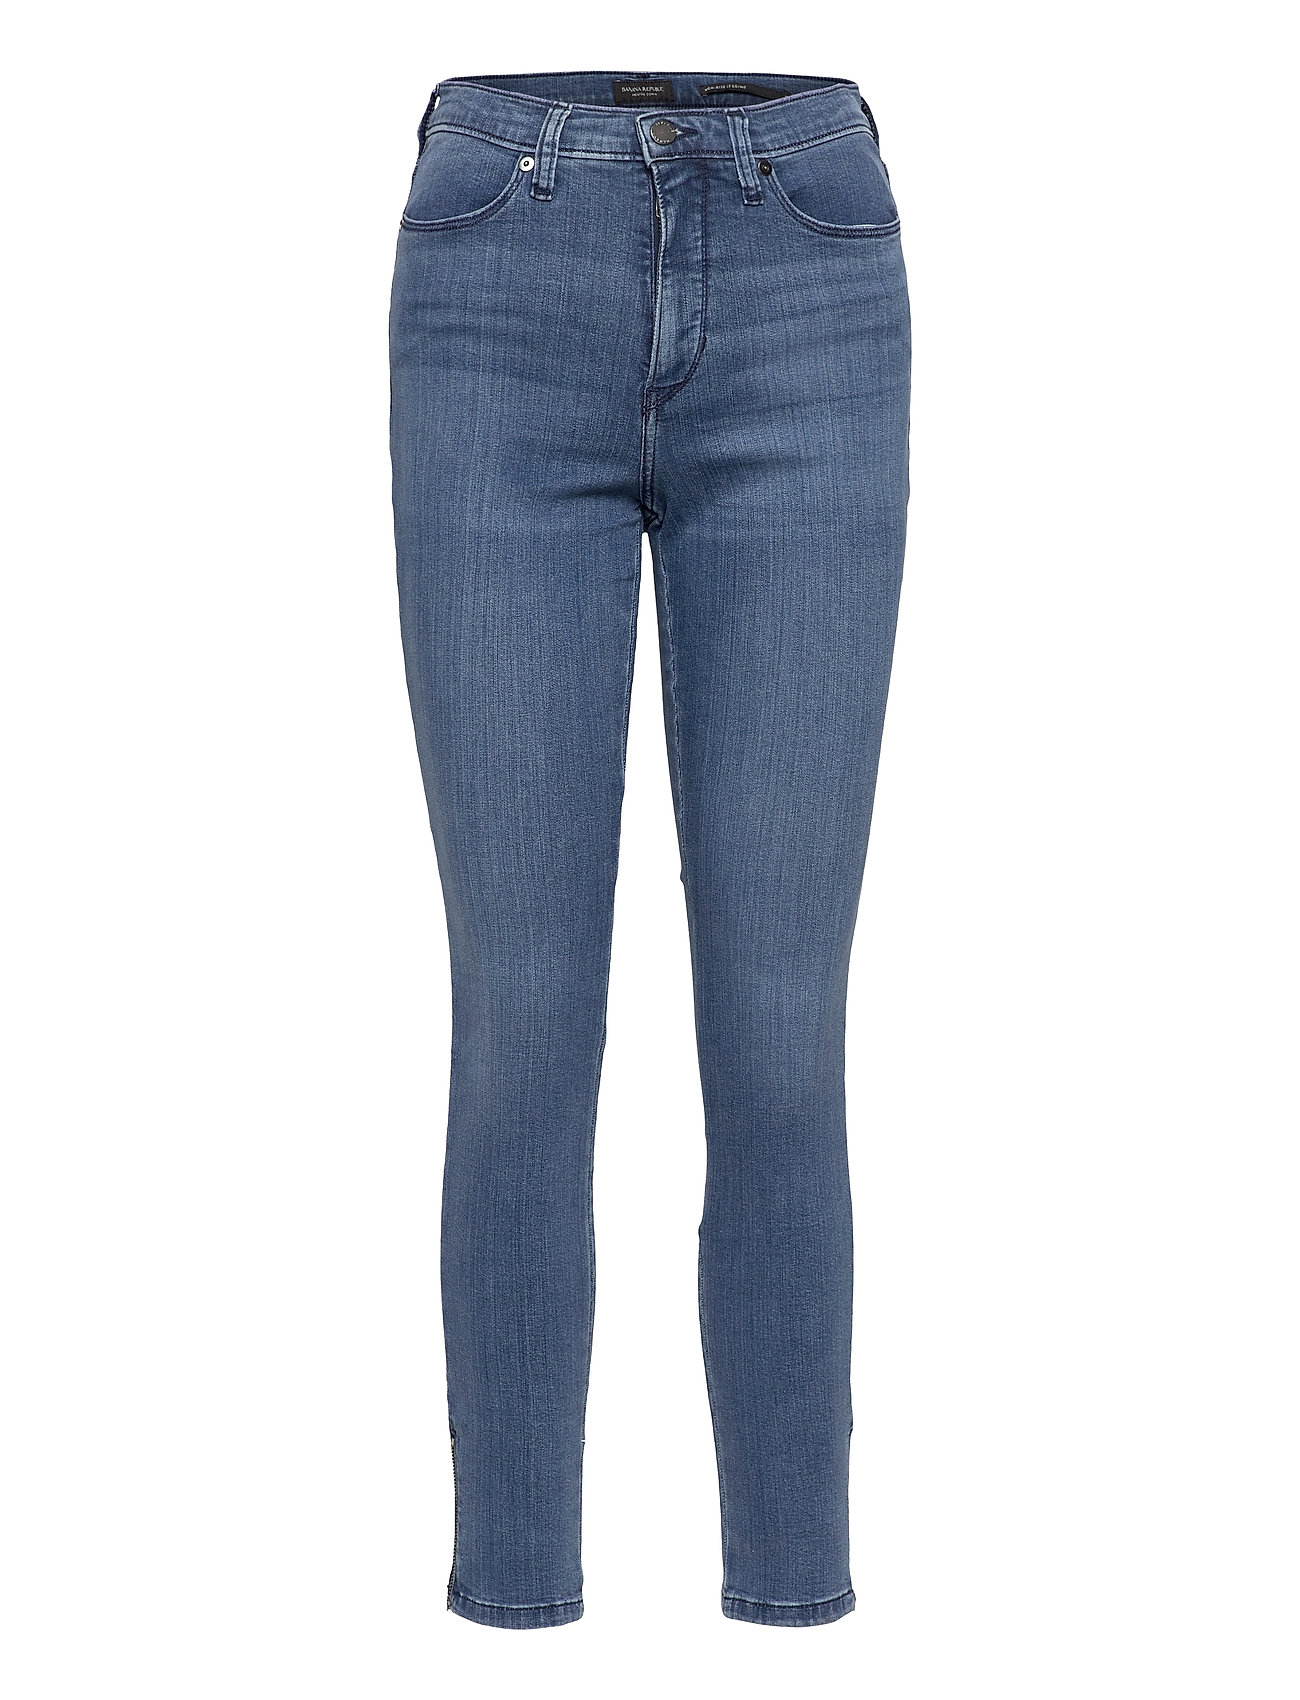 Image of High-Rise Legging Jean With Ankle Zips Skinny Jeans Blå Banana Republic (3491146883)